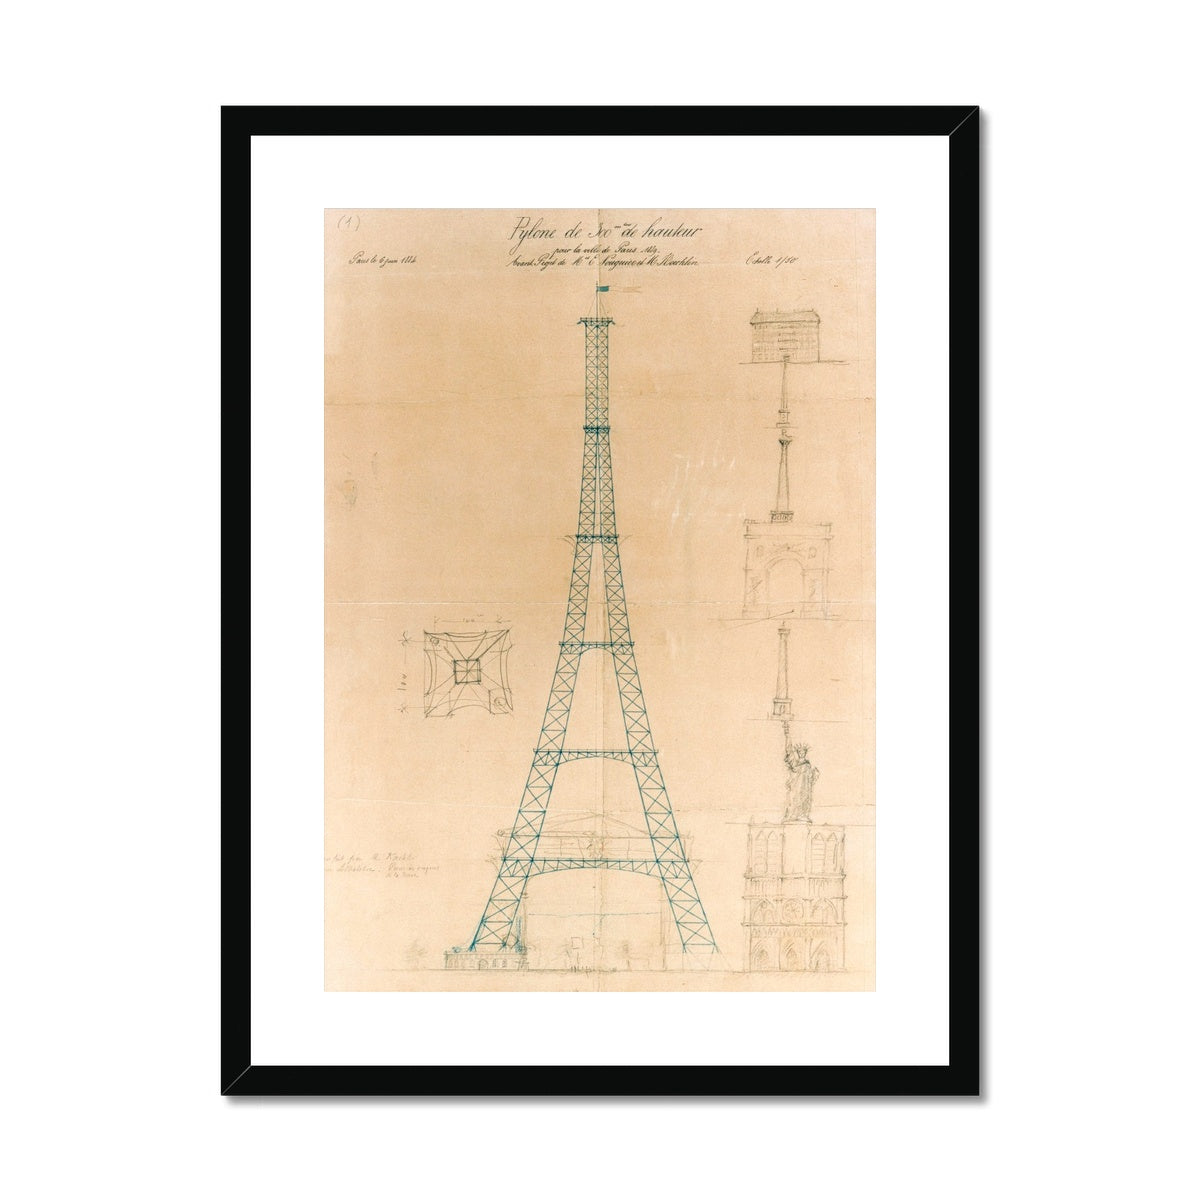 The Eiffel Tower - Original Sketch -  Framed & Mounted Print